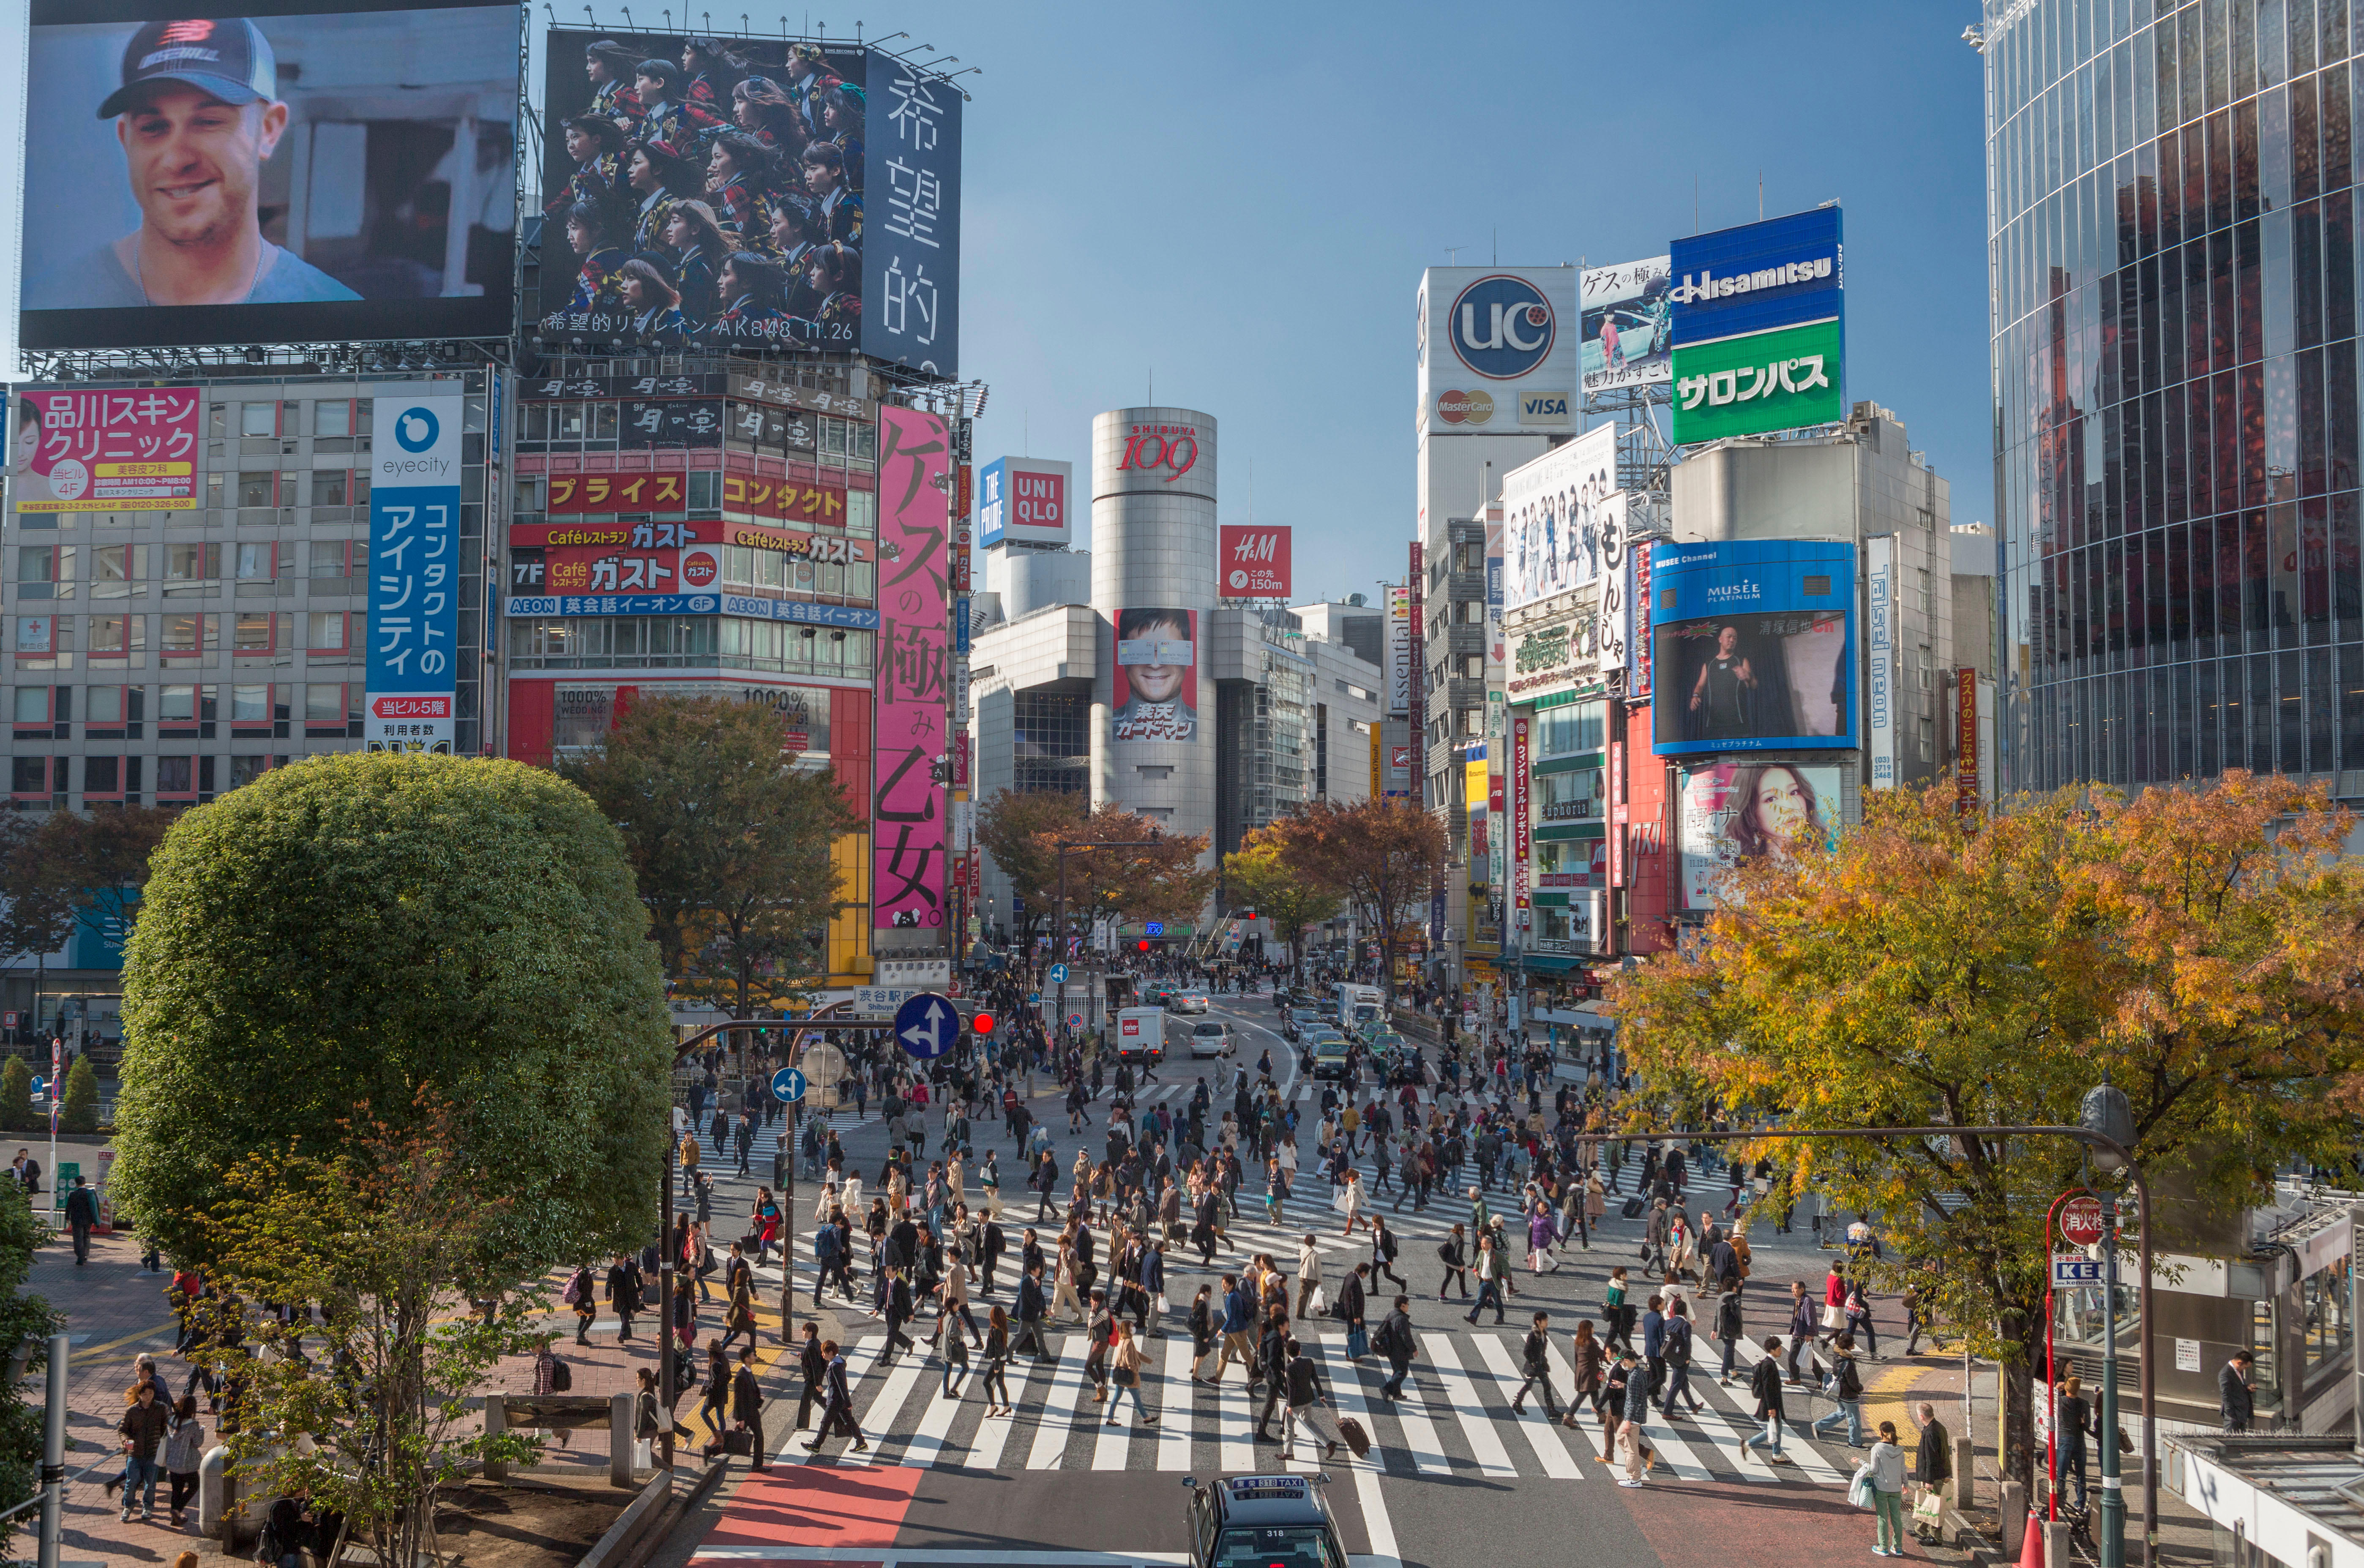 Japan, Tokyo City, Shibuya District, Hachiko Crossing